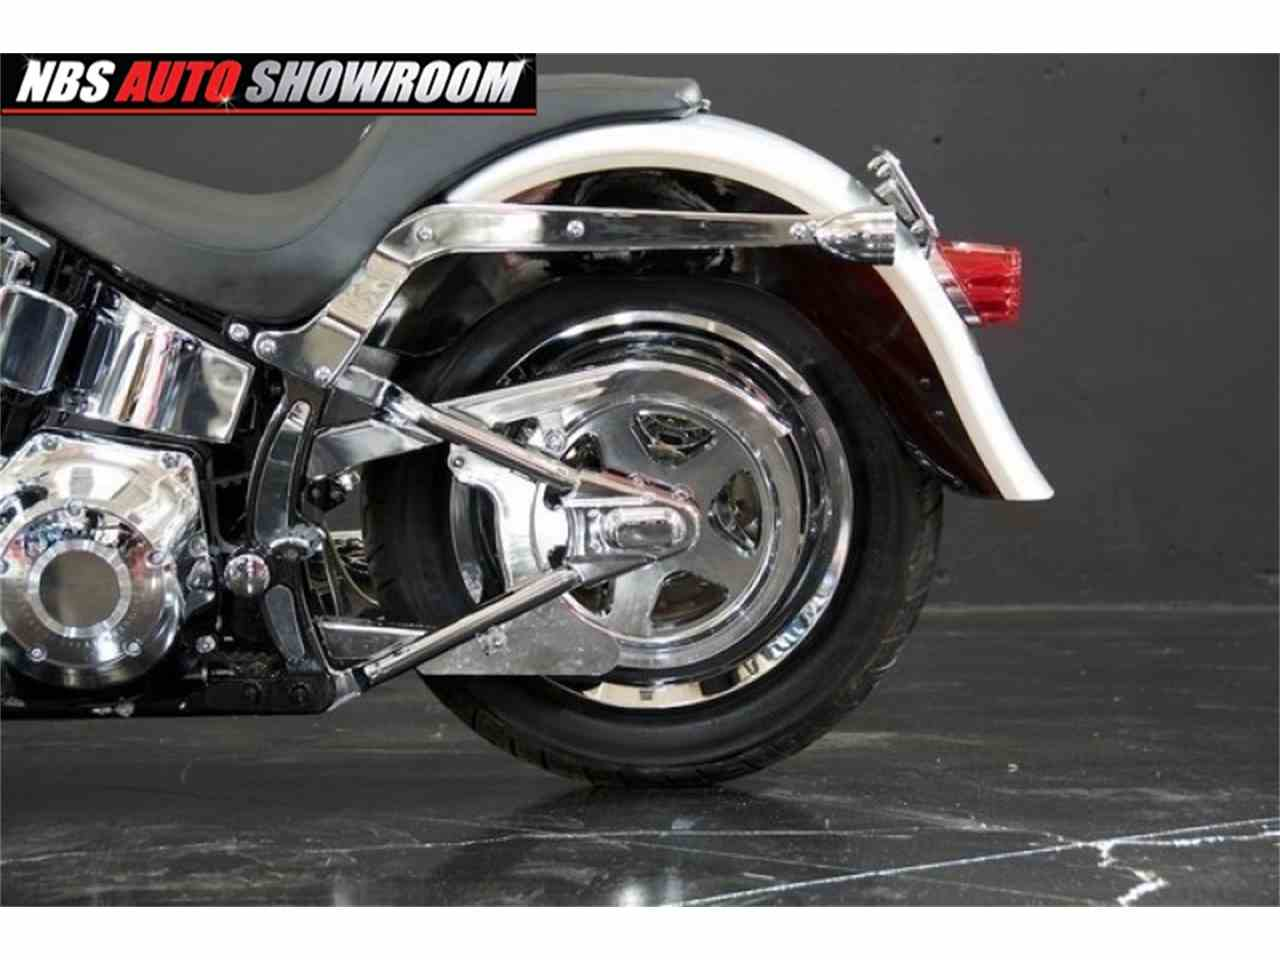 Large Picture of 2003 Harley Davidson SCREAMING EAGLE located in California - $8,003.00 - IVXN